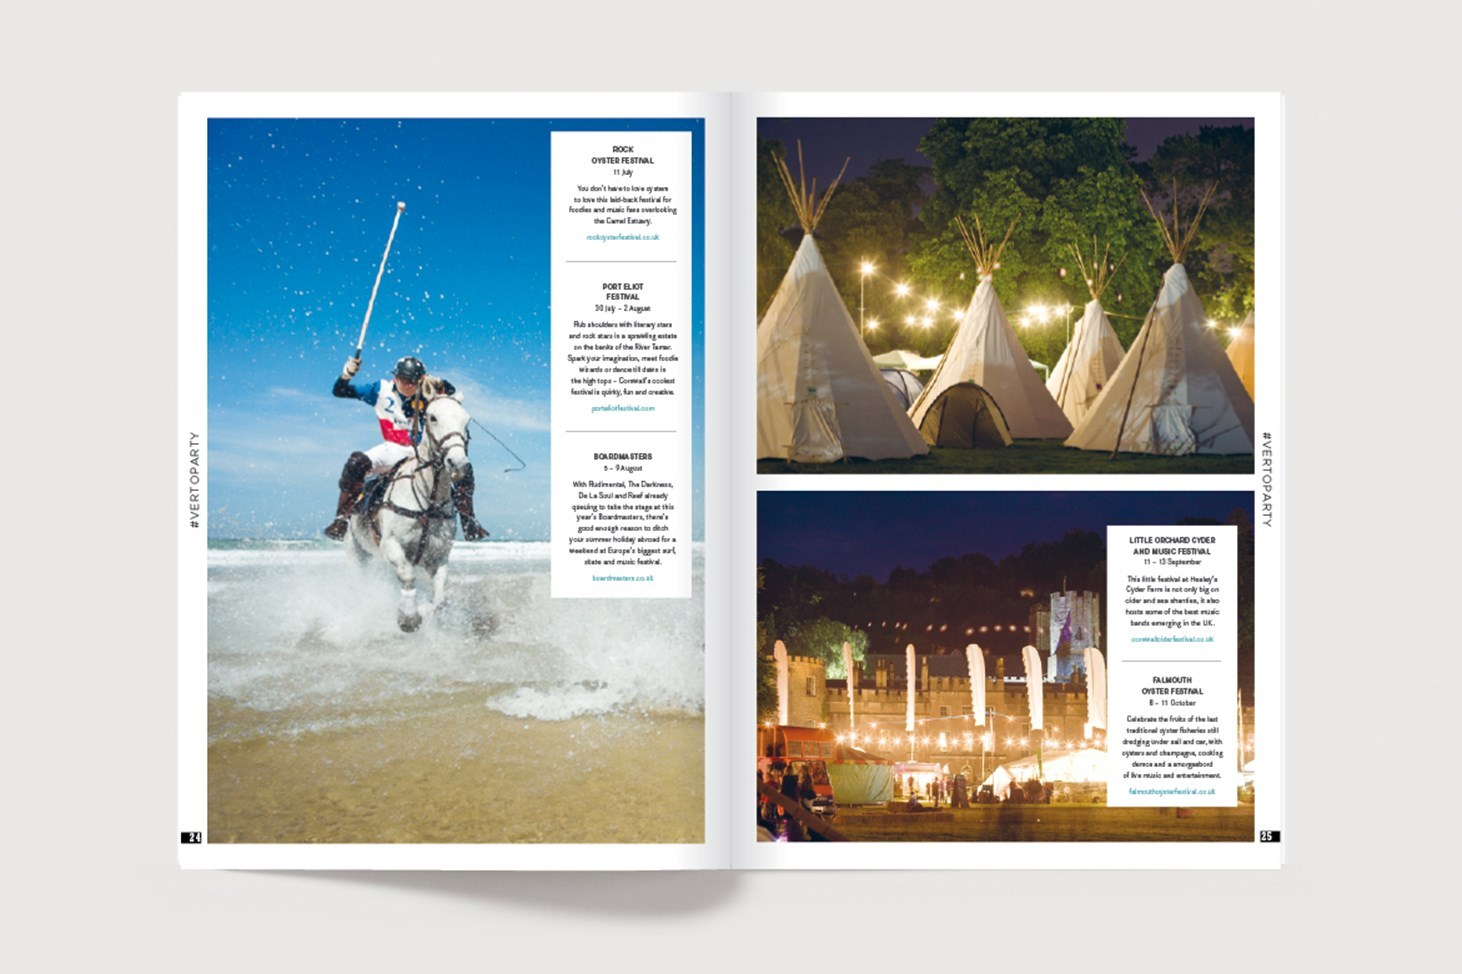 A spread from Verto Life online magazine showing activities